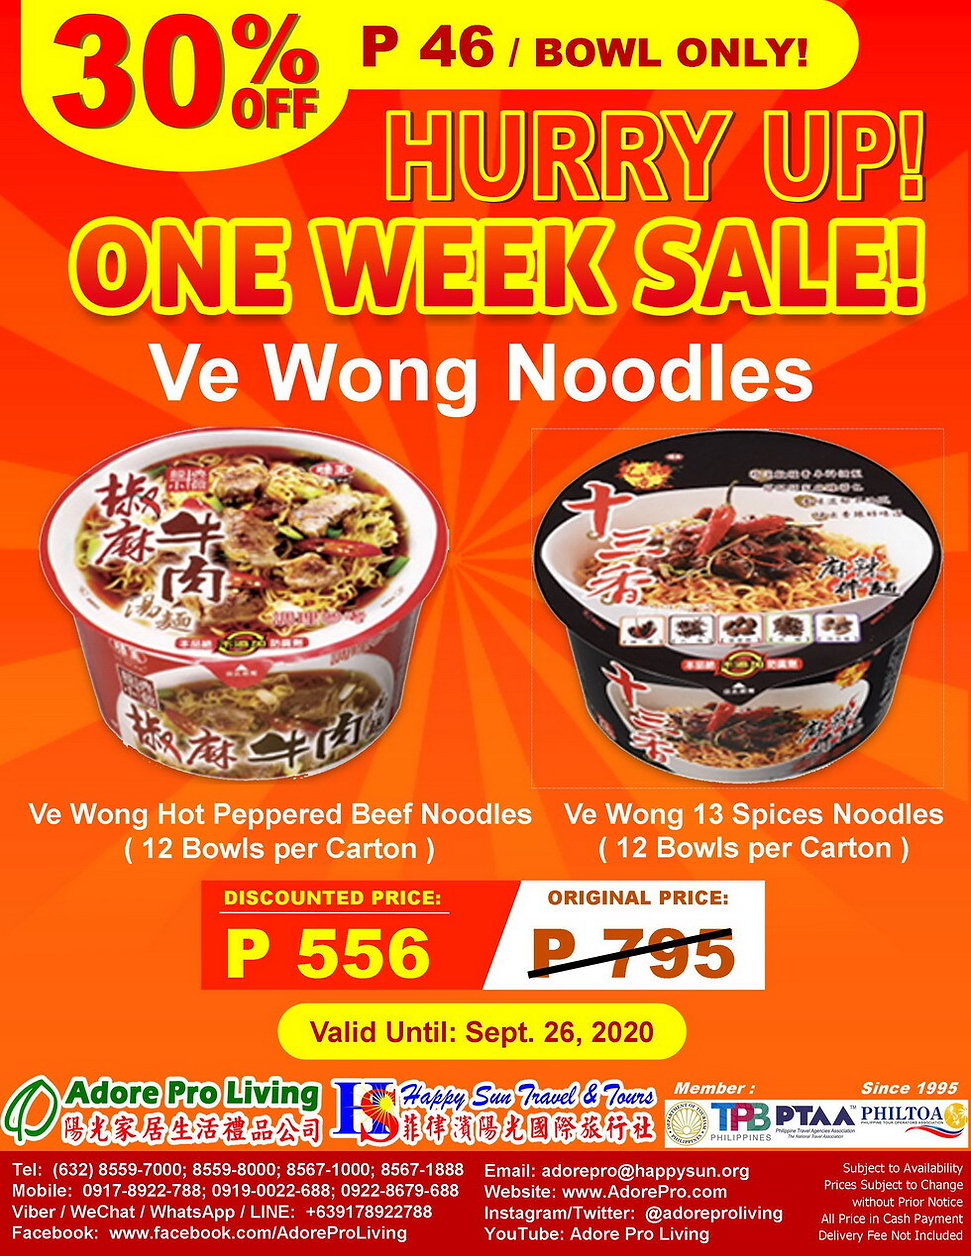 PHP556Only_30%Off_1WSale_VeWongBowlNoodl